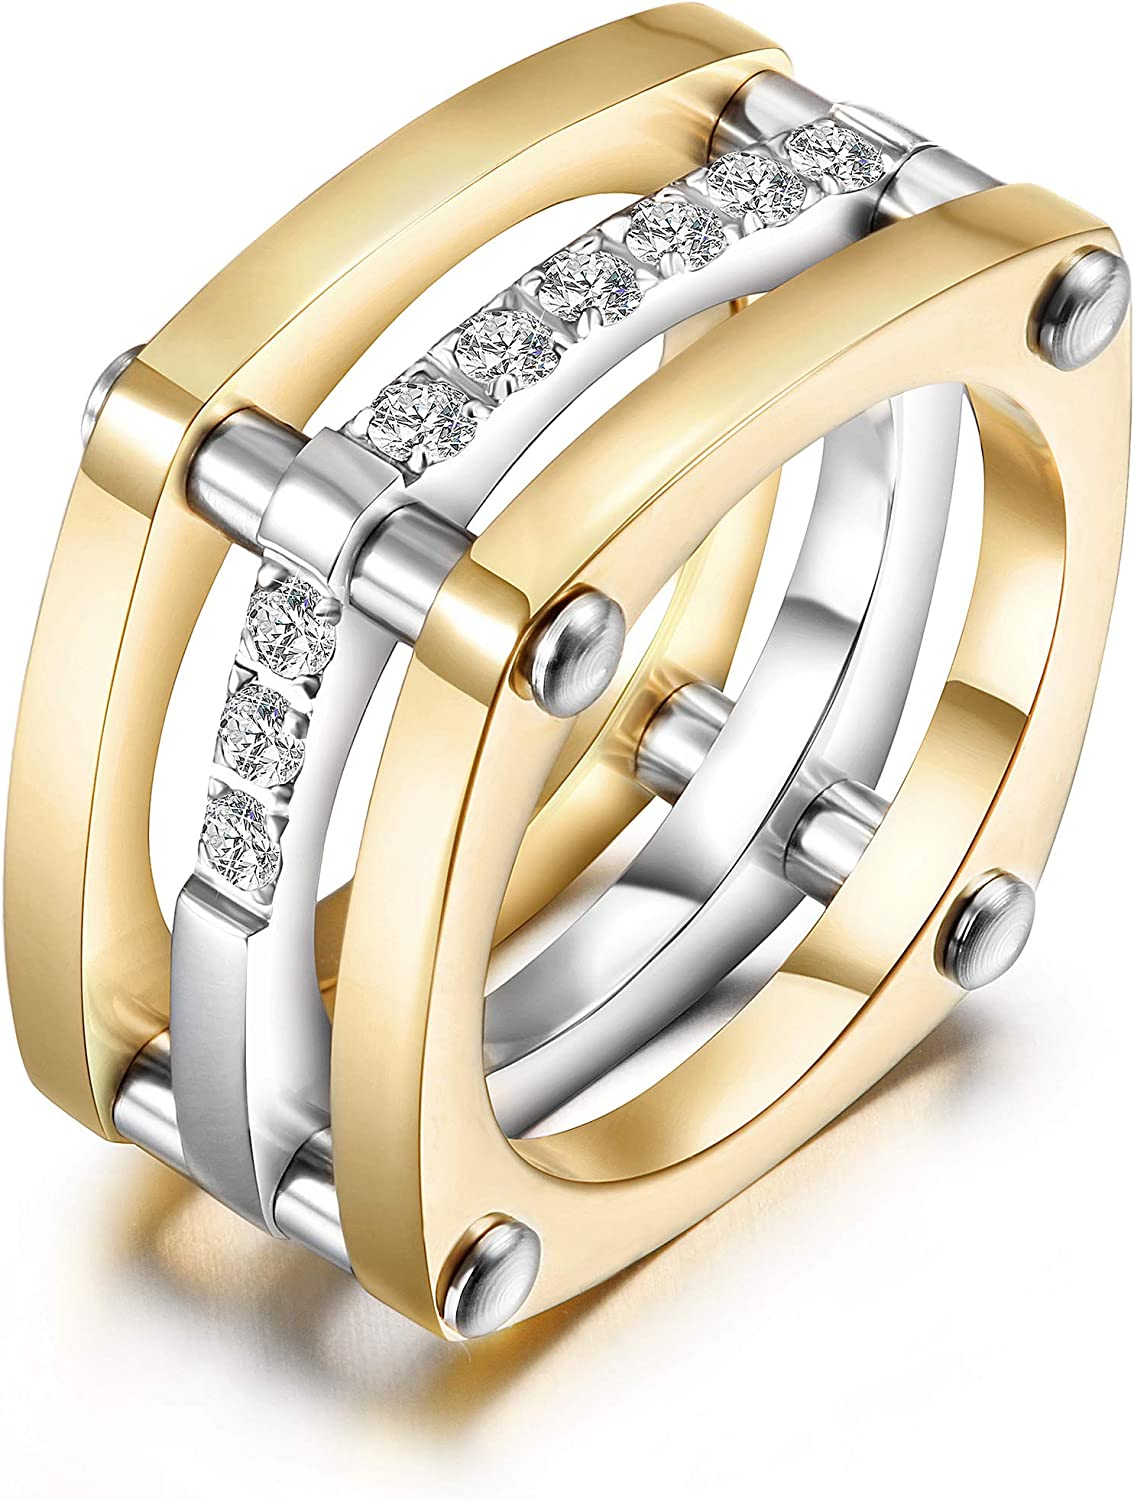 CIUNOFOR Gold Statement Rings for Women Girl Fashion Chunky Diamond CZ Cocktail Rings Wide Bands Parallel Bar Ring